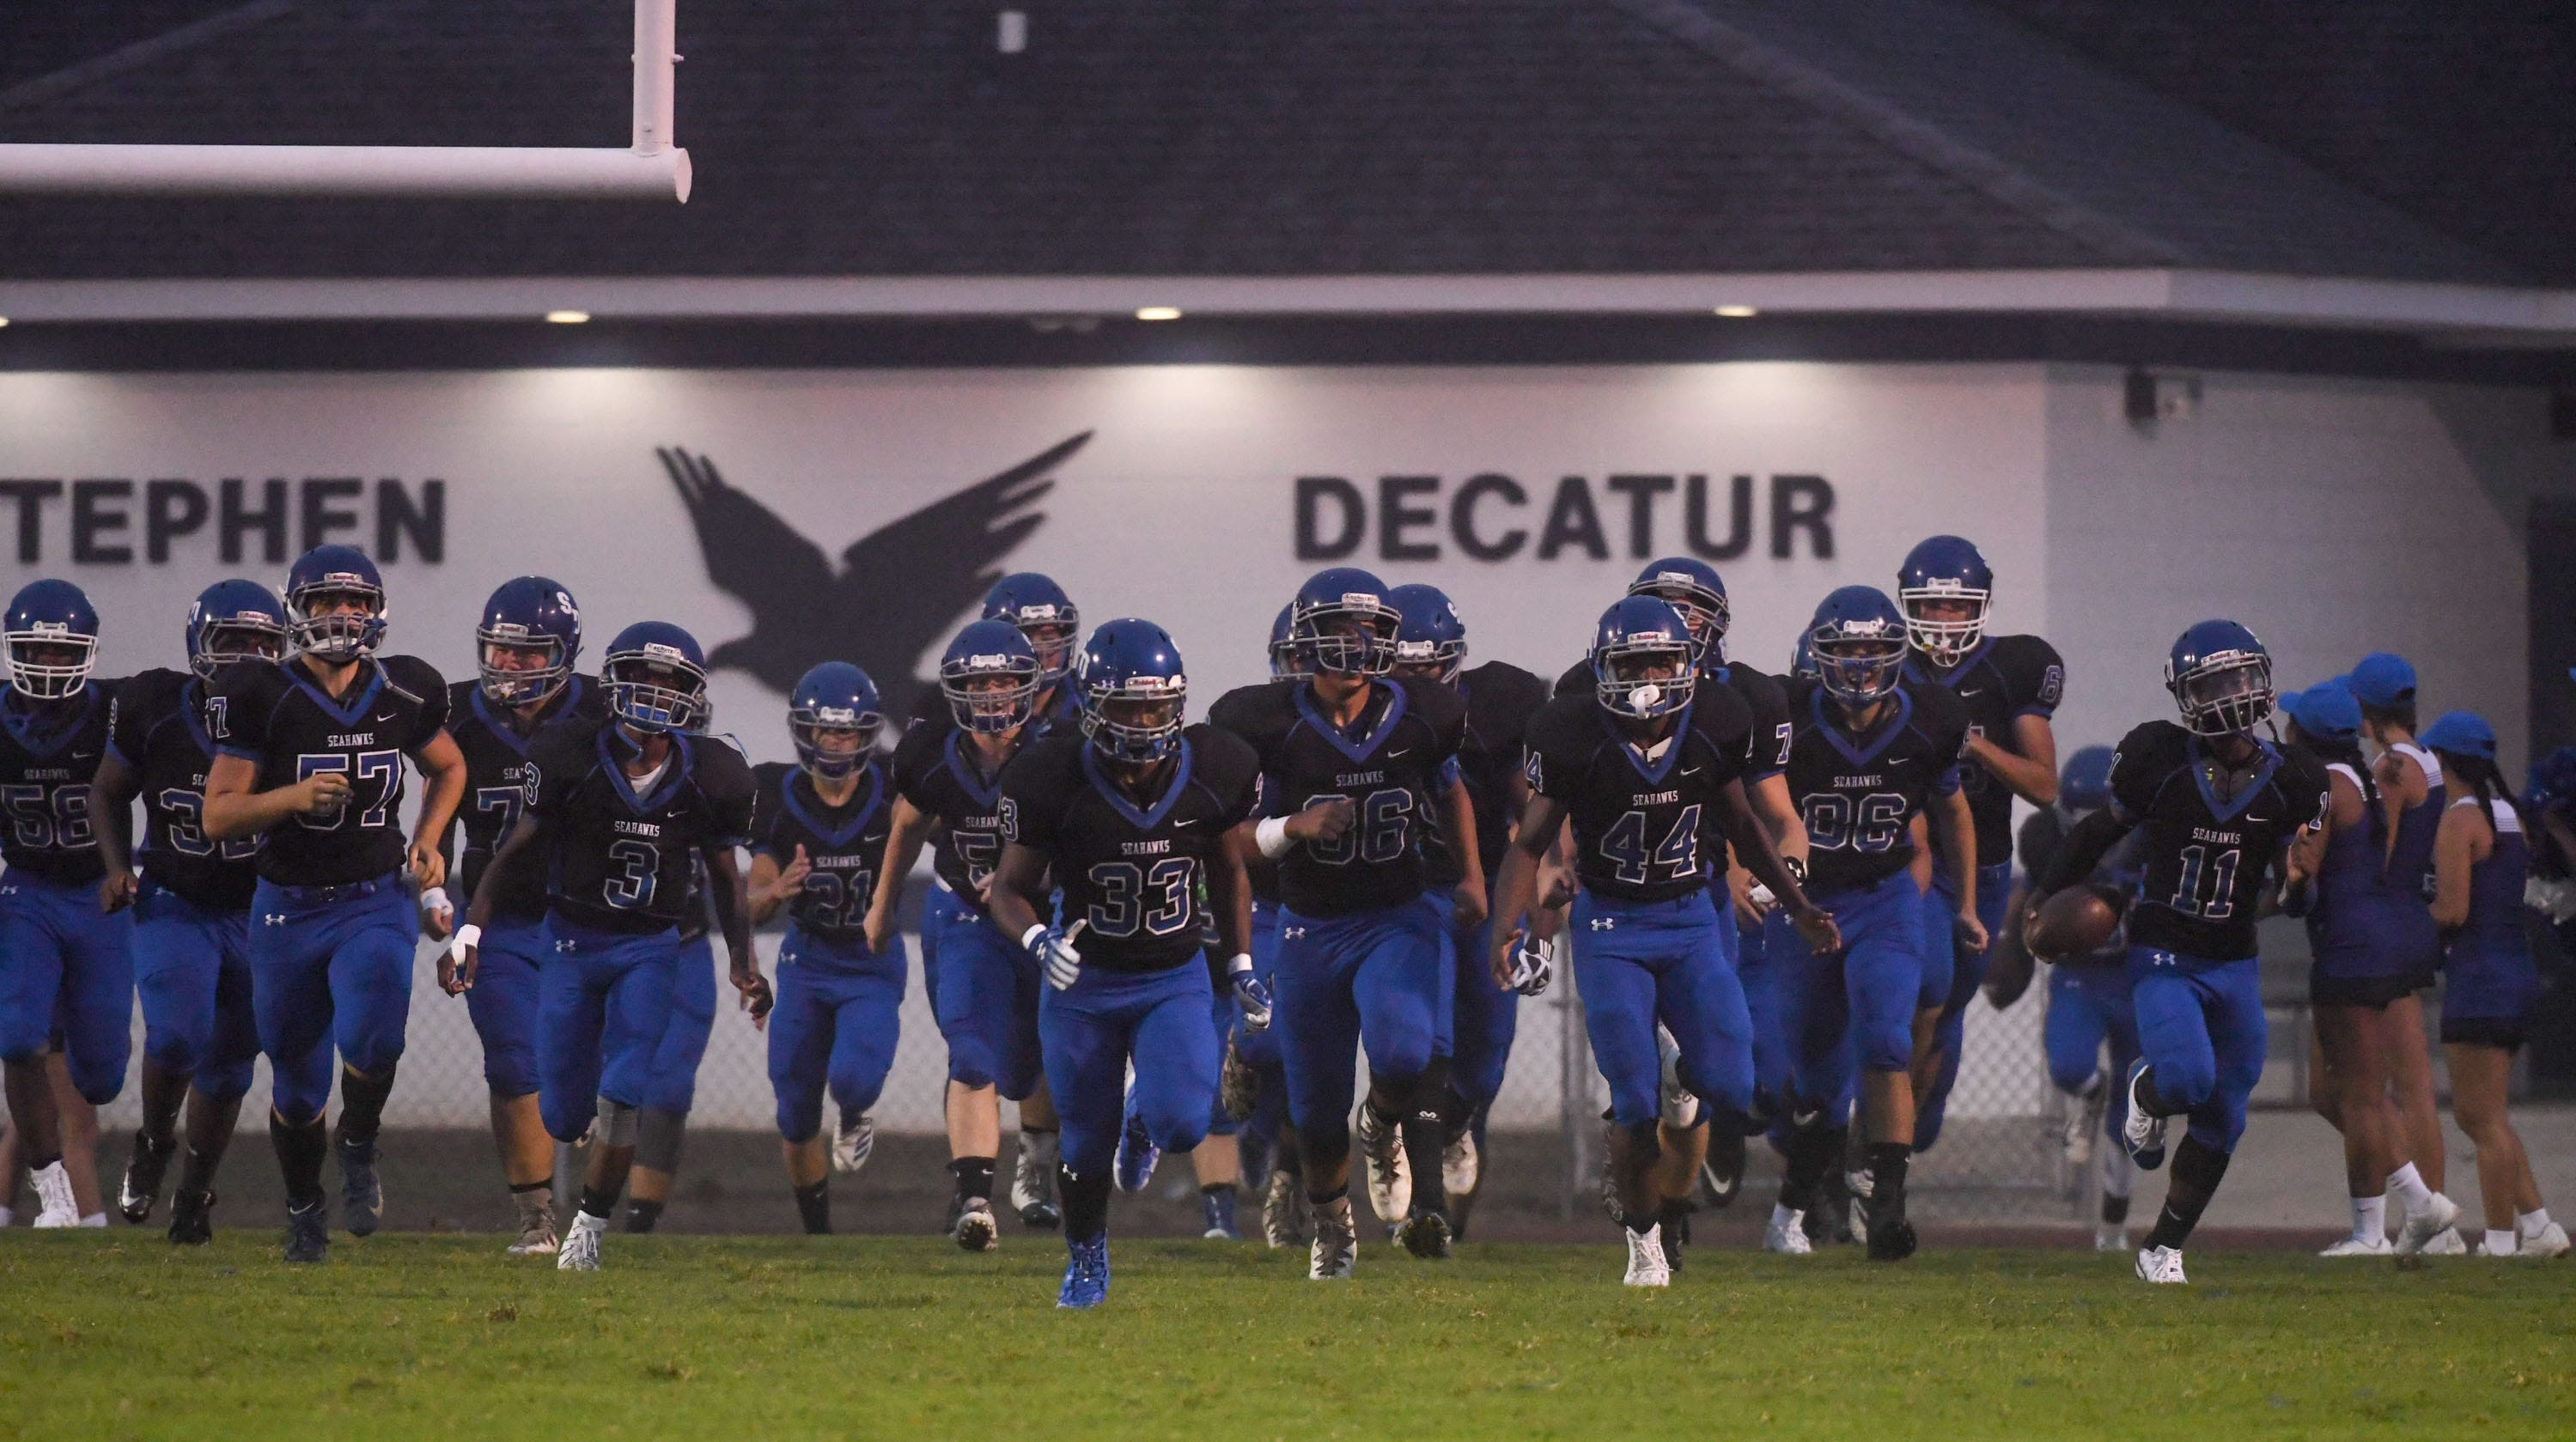 Stephen Decatur runs onto the field before the game against Washington on Thursday, Sept. 14, 2018. In Berlin, Md.